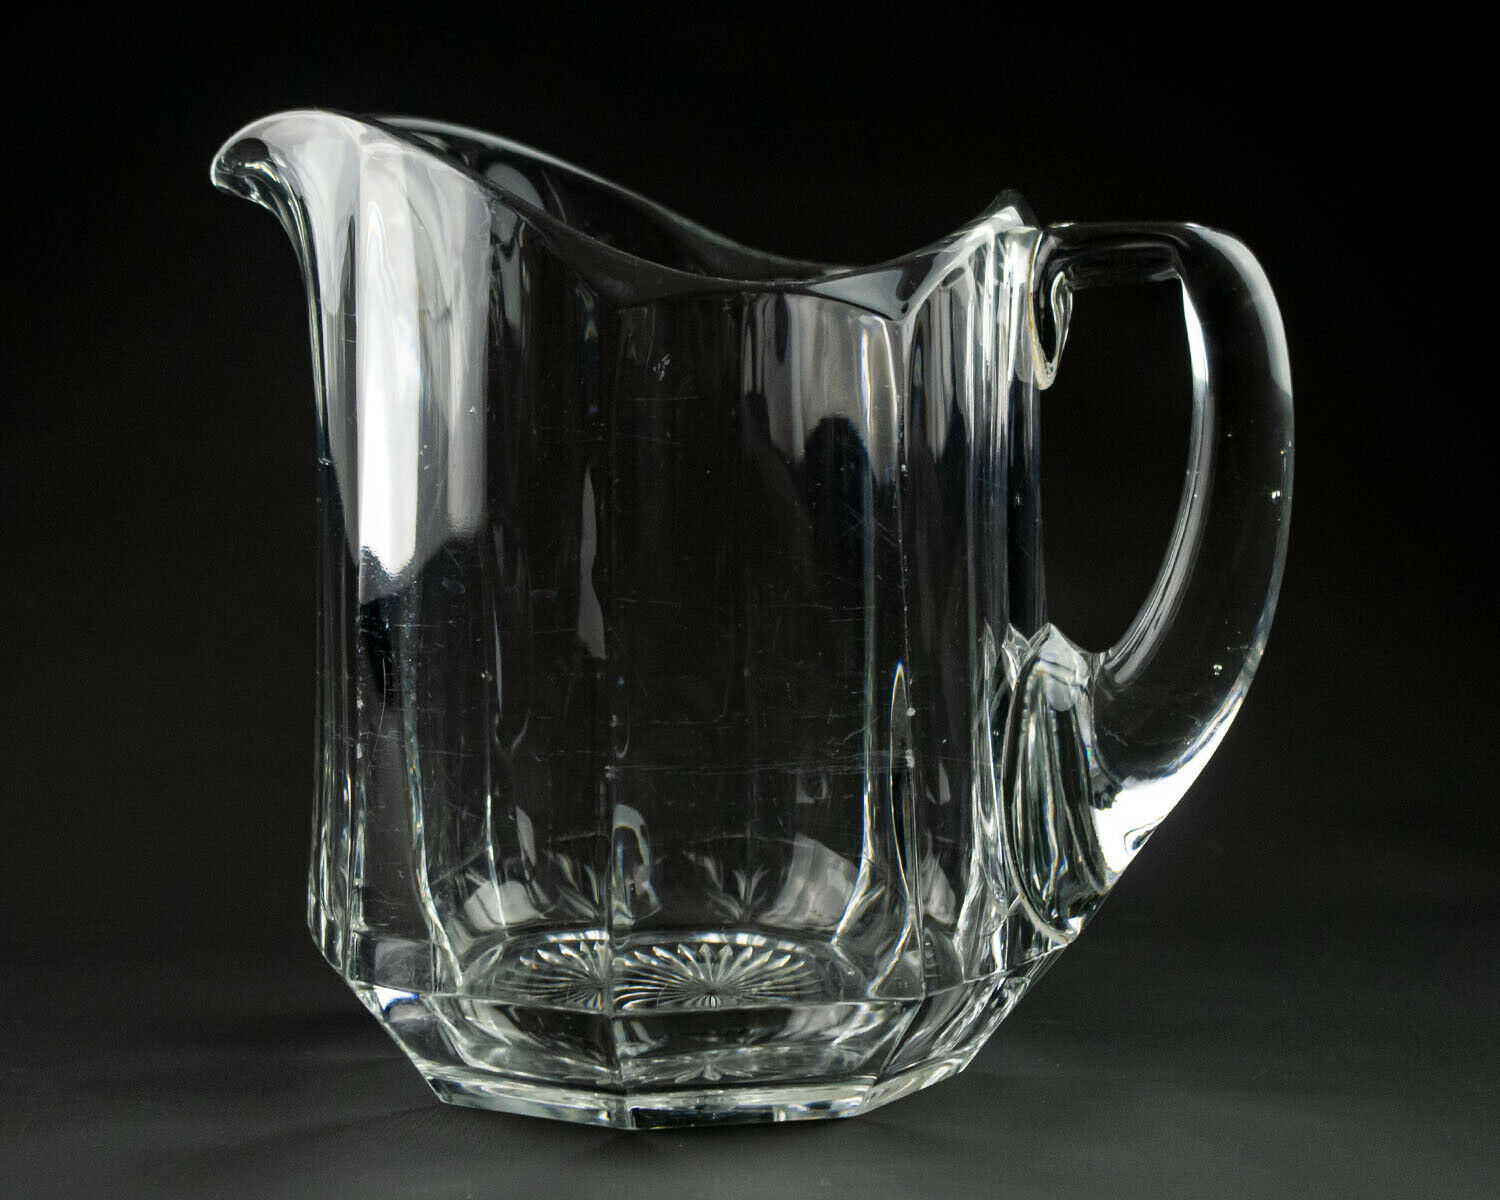 Primary image for Heisey 429 Plain Panel Recess 56oz Pitcher, Antique EAPG c1913 Colonial 7 1/2""